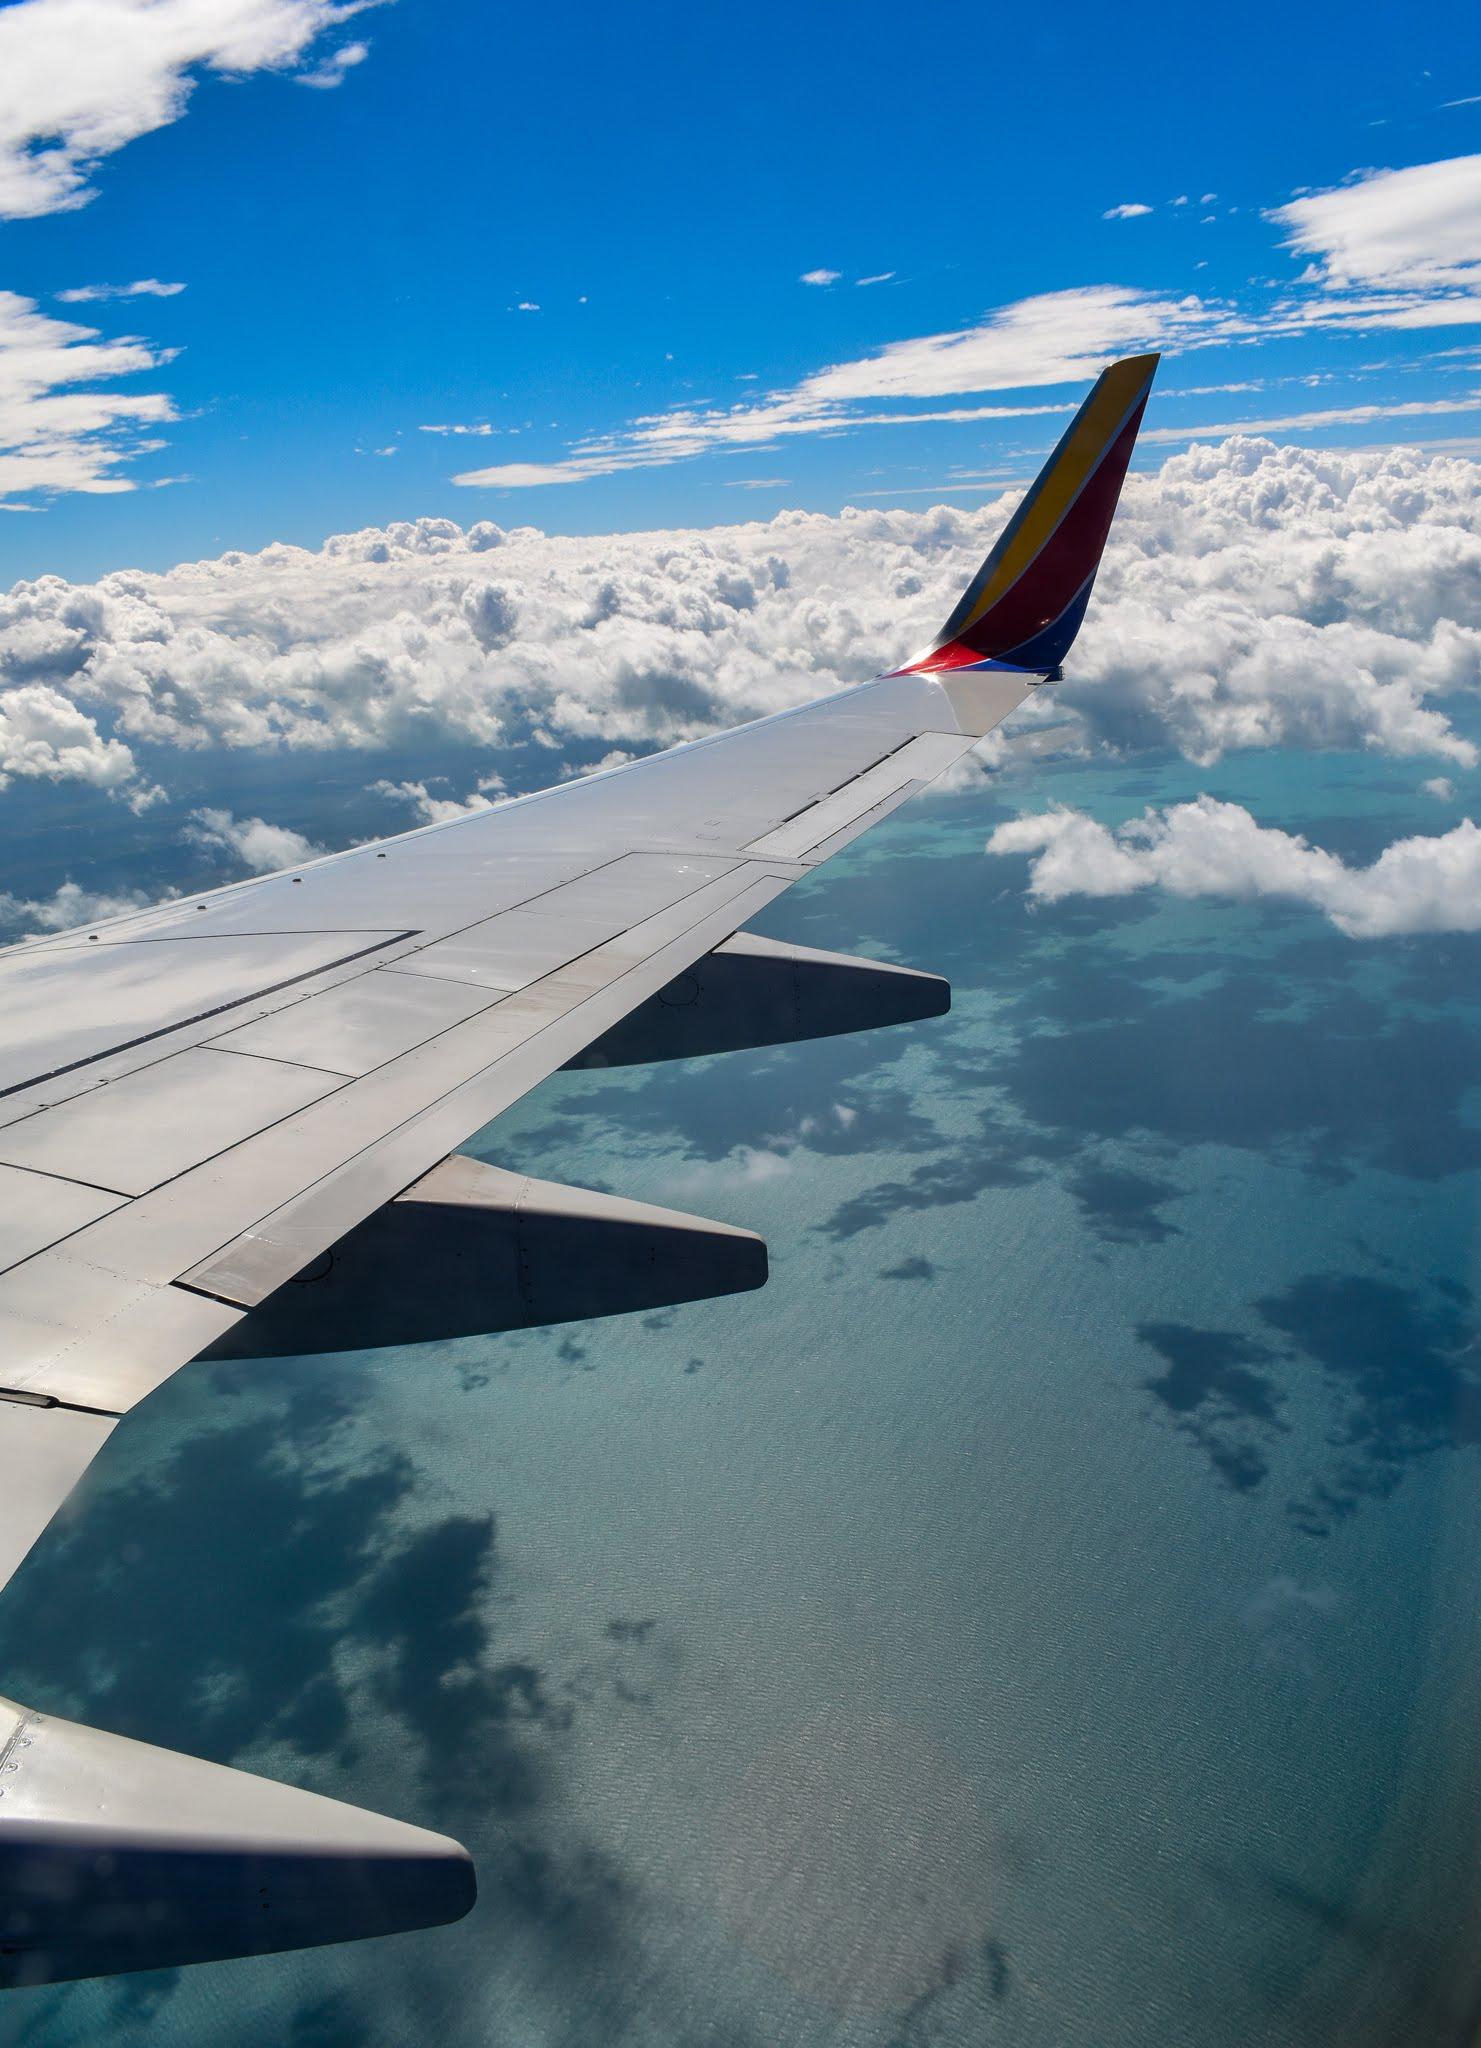 Uprooted-Traveler-Vegan-Weekend-in-Tulum-Mexico-how-to-get-there-airplane-window.jpg